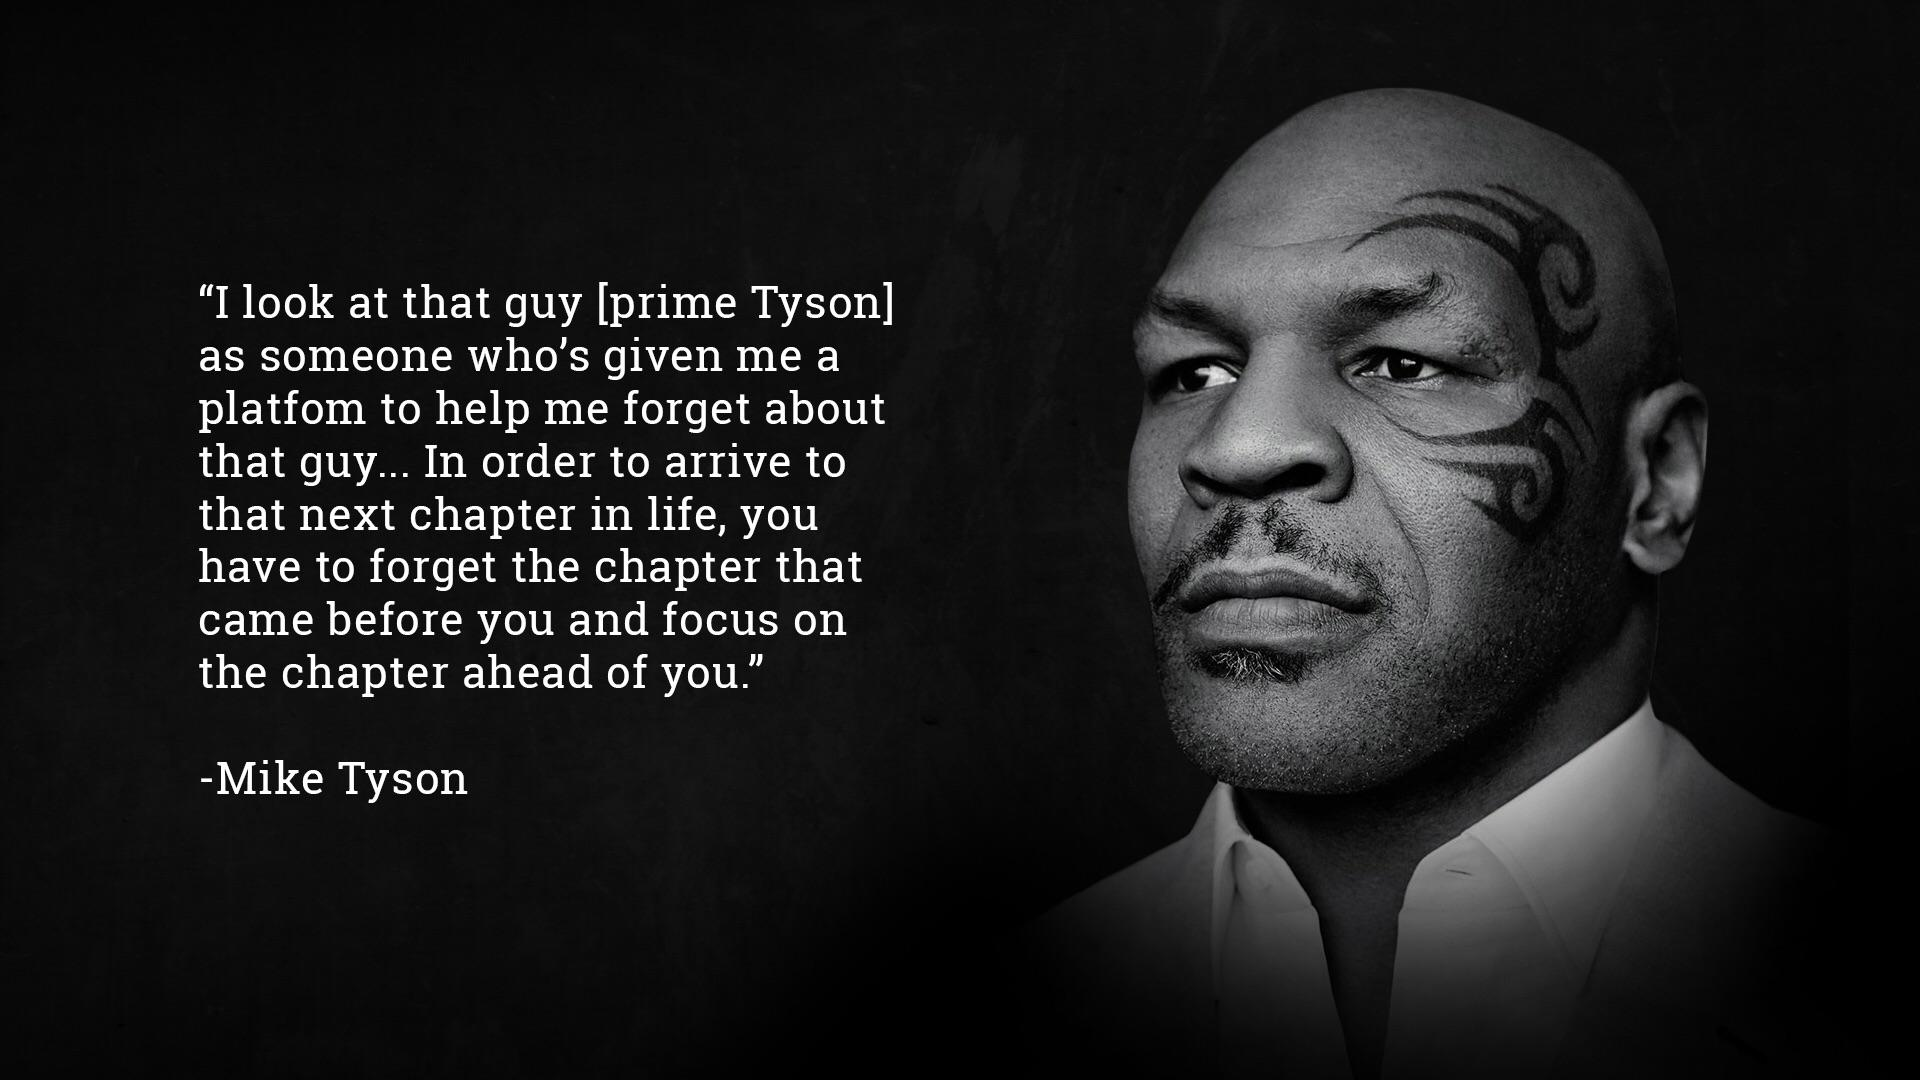 1920x1080 Image] Mike Tyson is wise as an older man. : GetMotivated